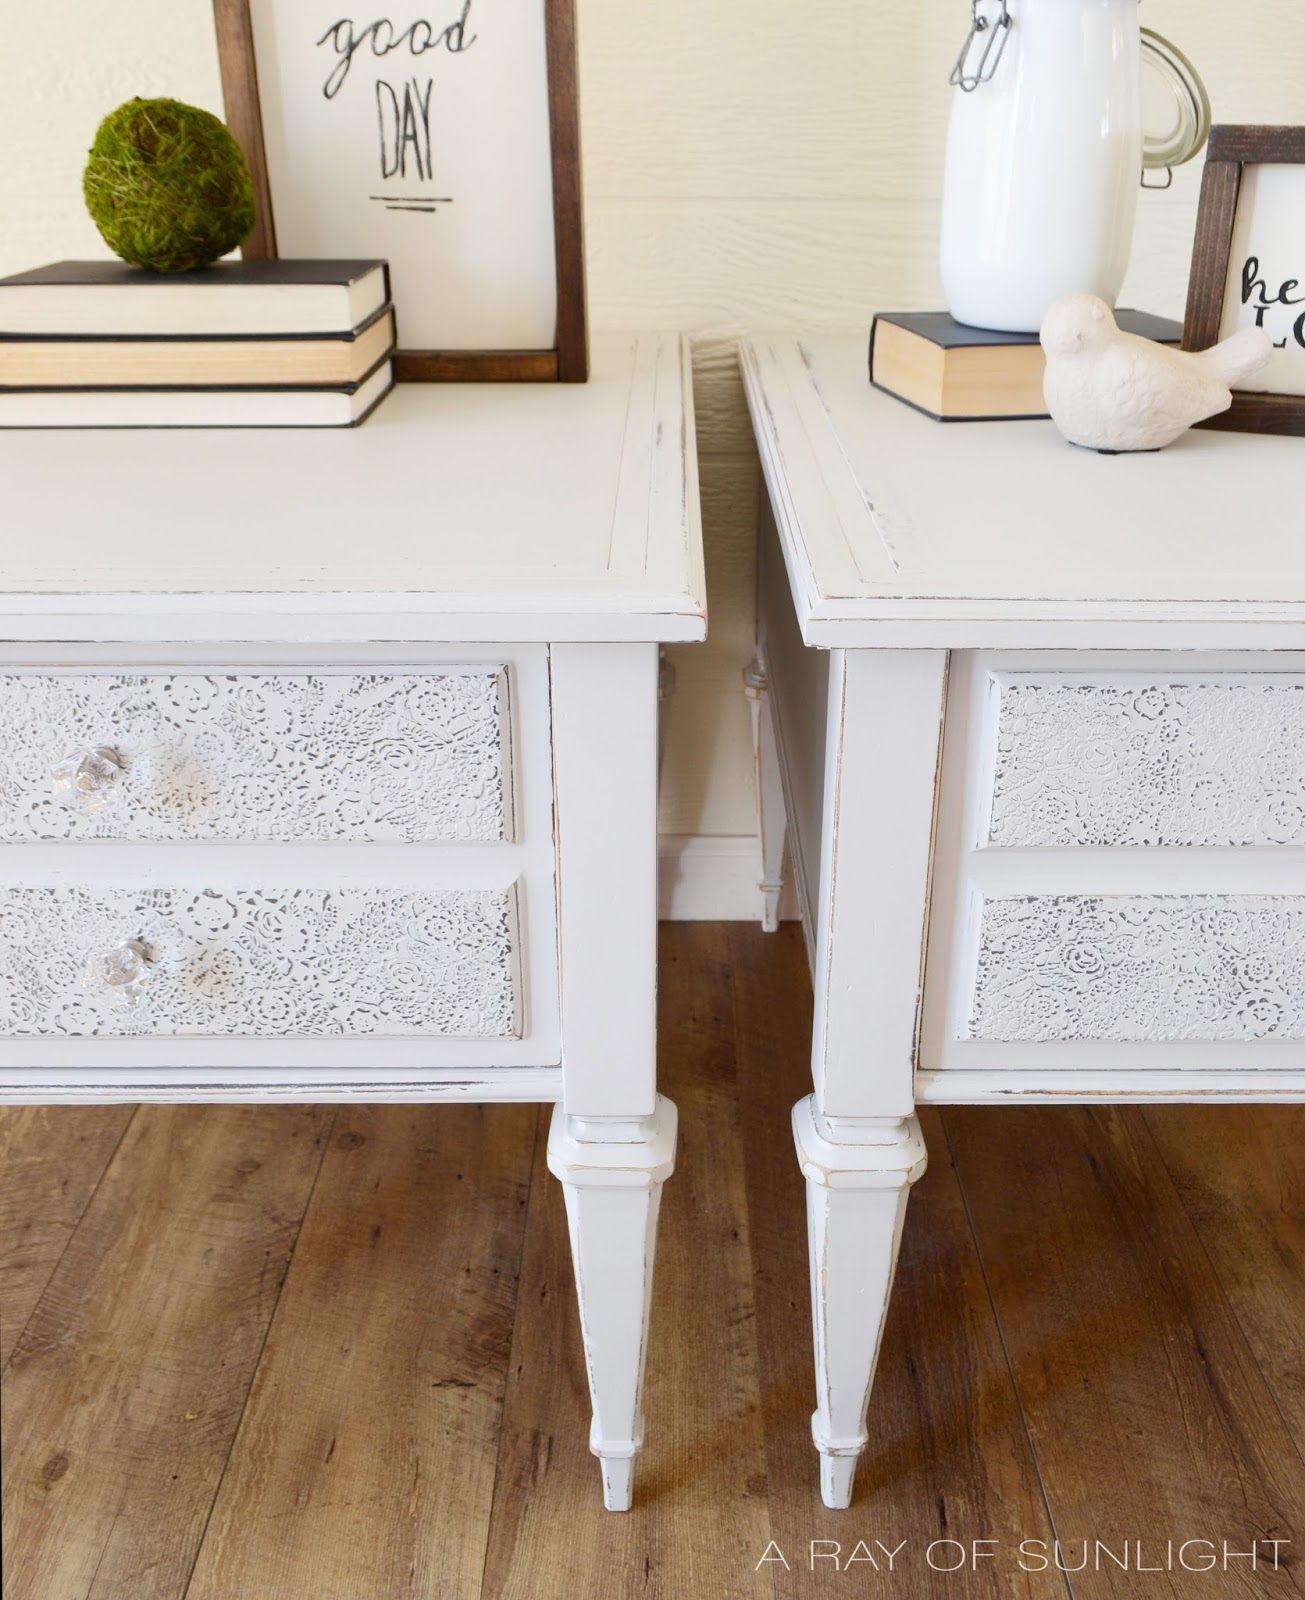 These adorable shabby chic nightstands were painted in a light  warm gray and got a special painting technique on the drawers. Check out the whole furniture makeover here! By A Ray of Sunlight